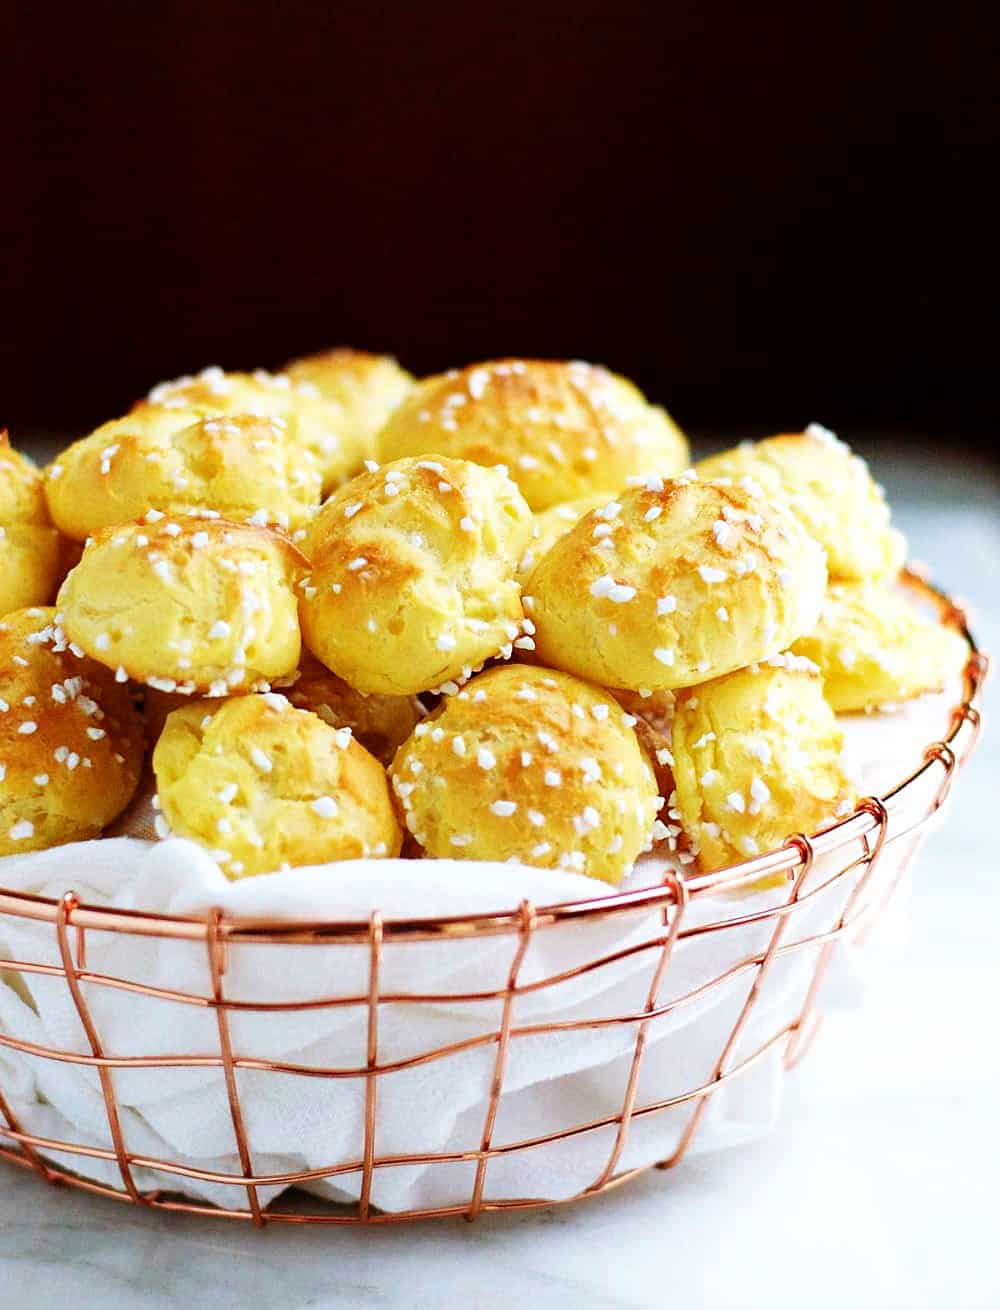 Homemade-Chouquettes-French-Pastry-Sugar-Puffs served in a wire basked